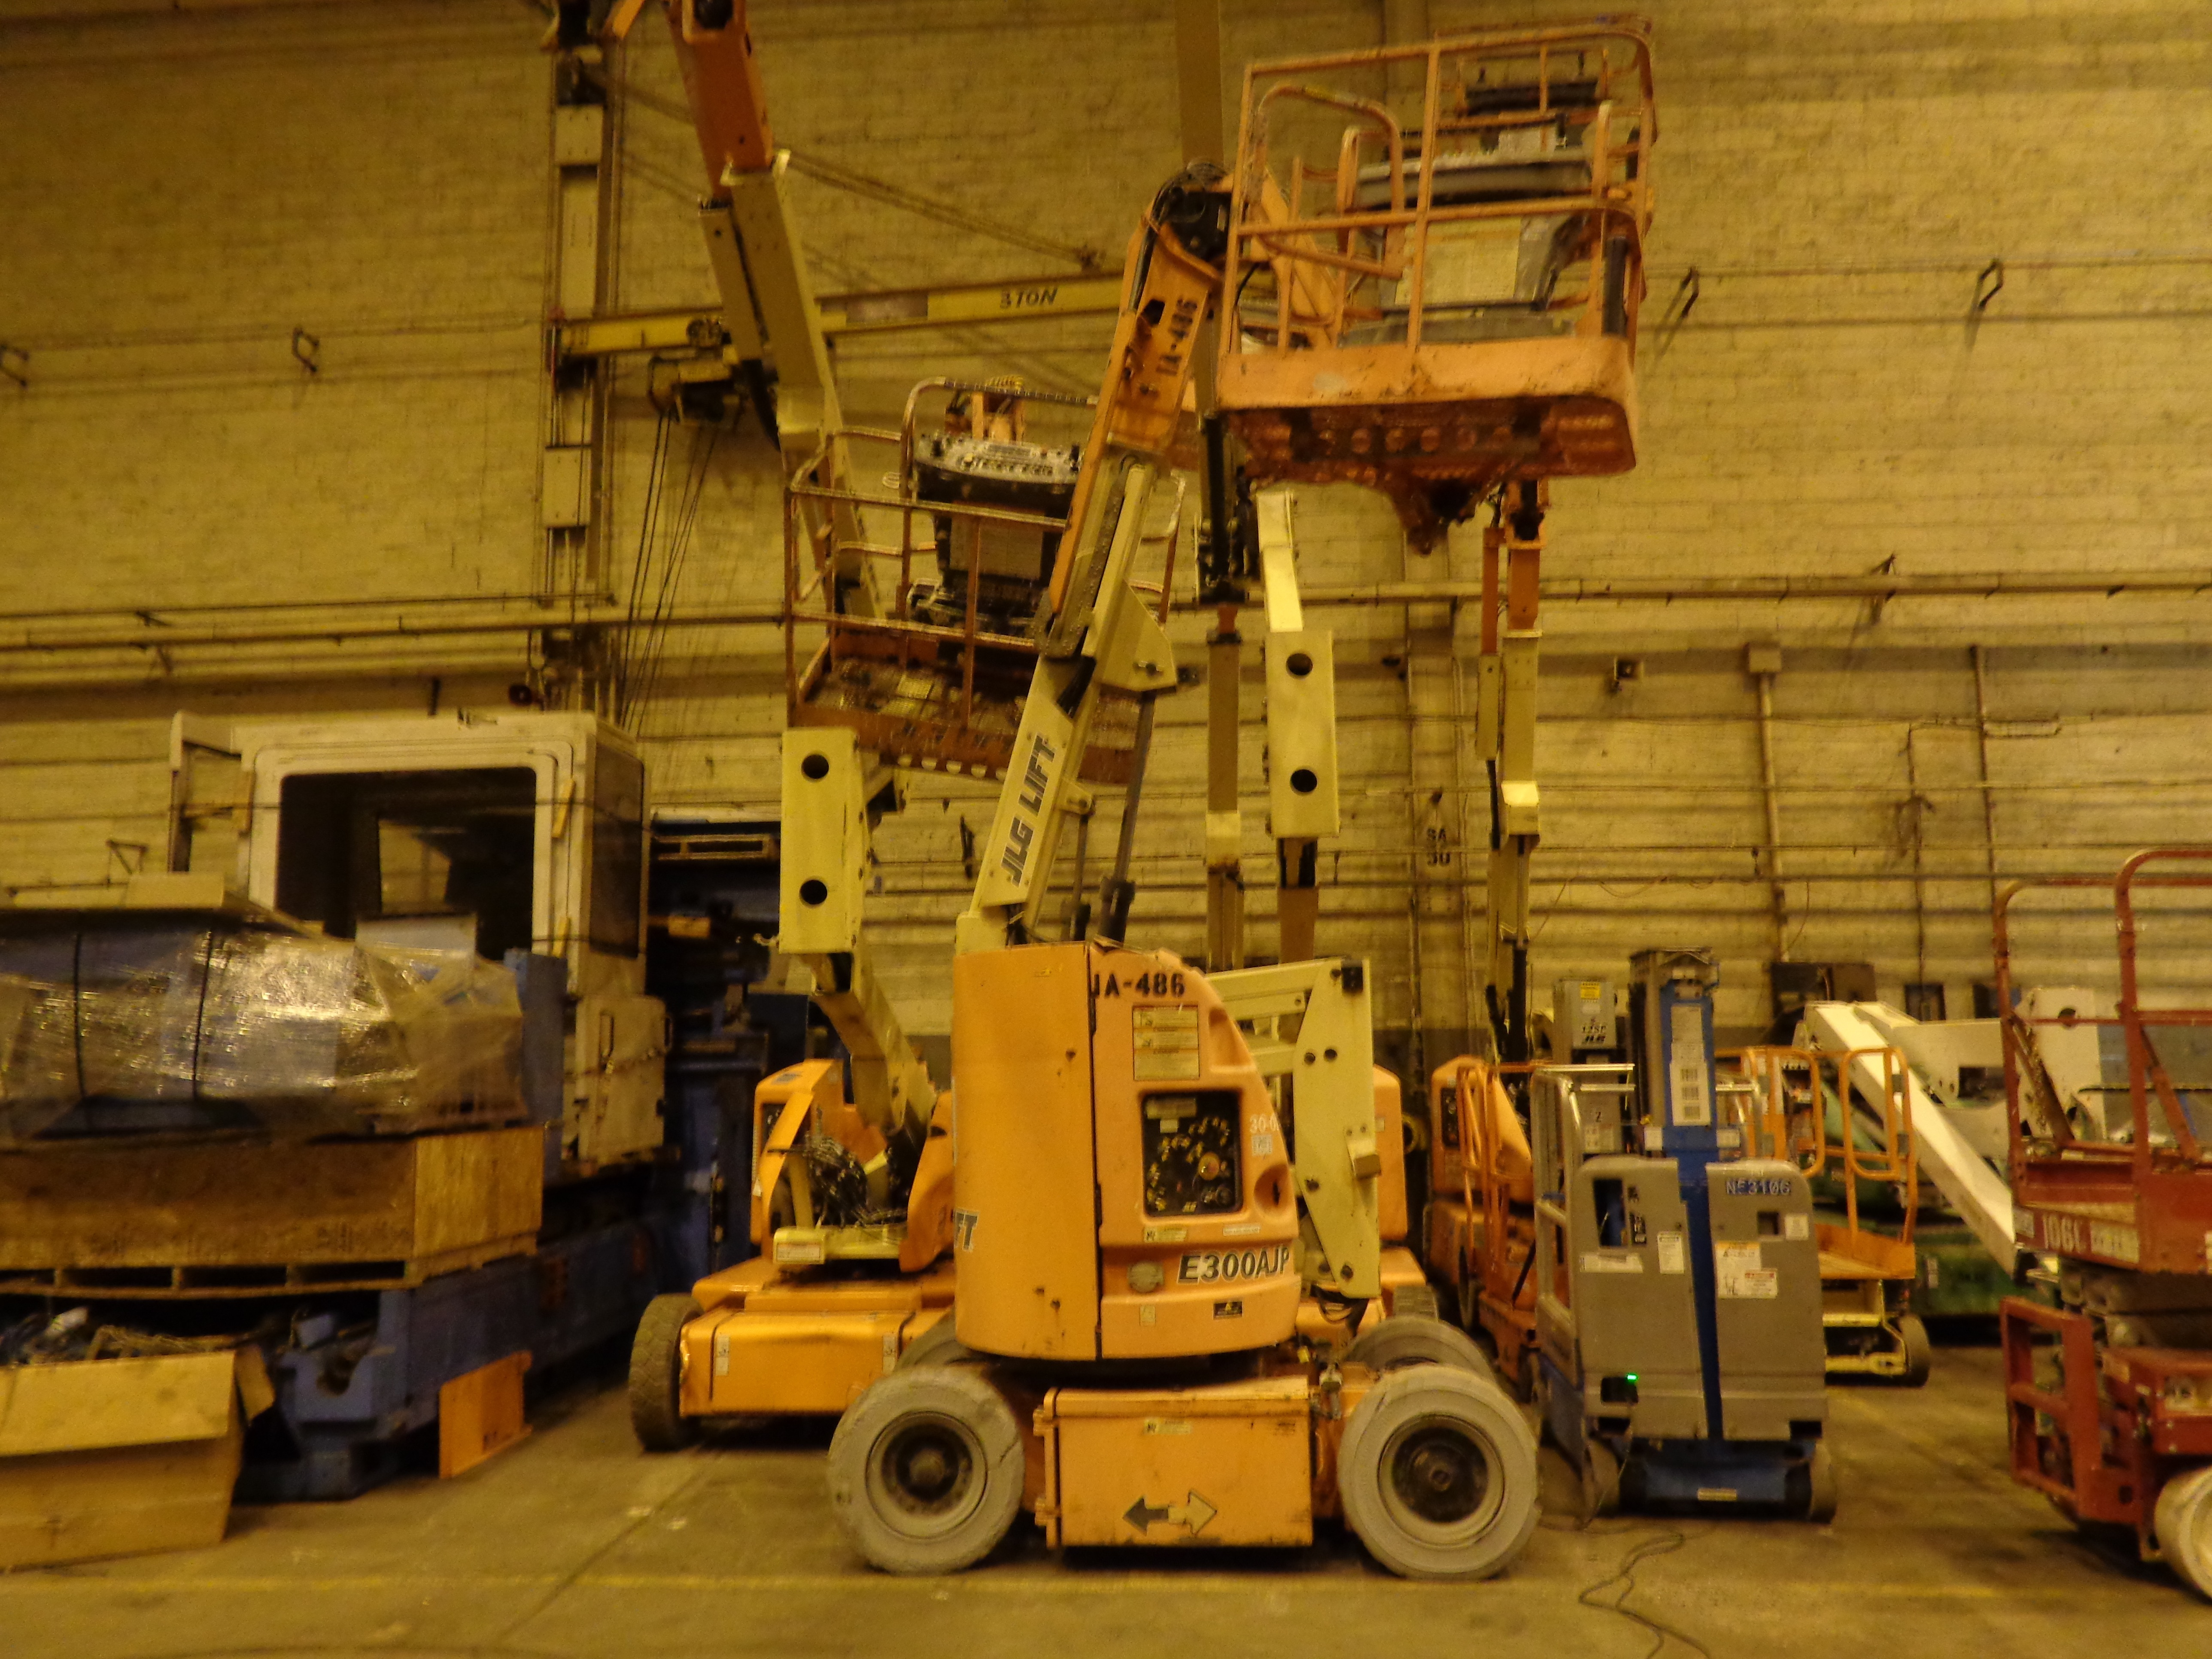 Lot 45A - JLG E300AJP Electric Boom Lift - 30FT Height